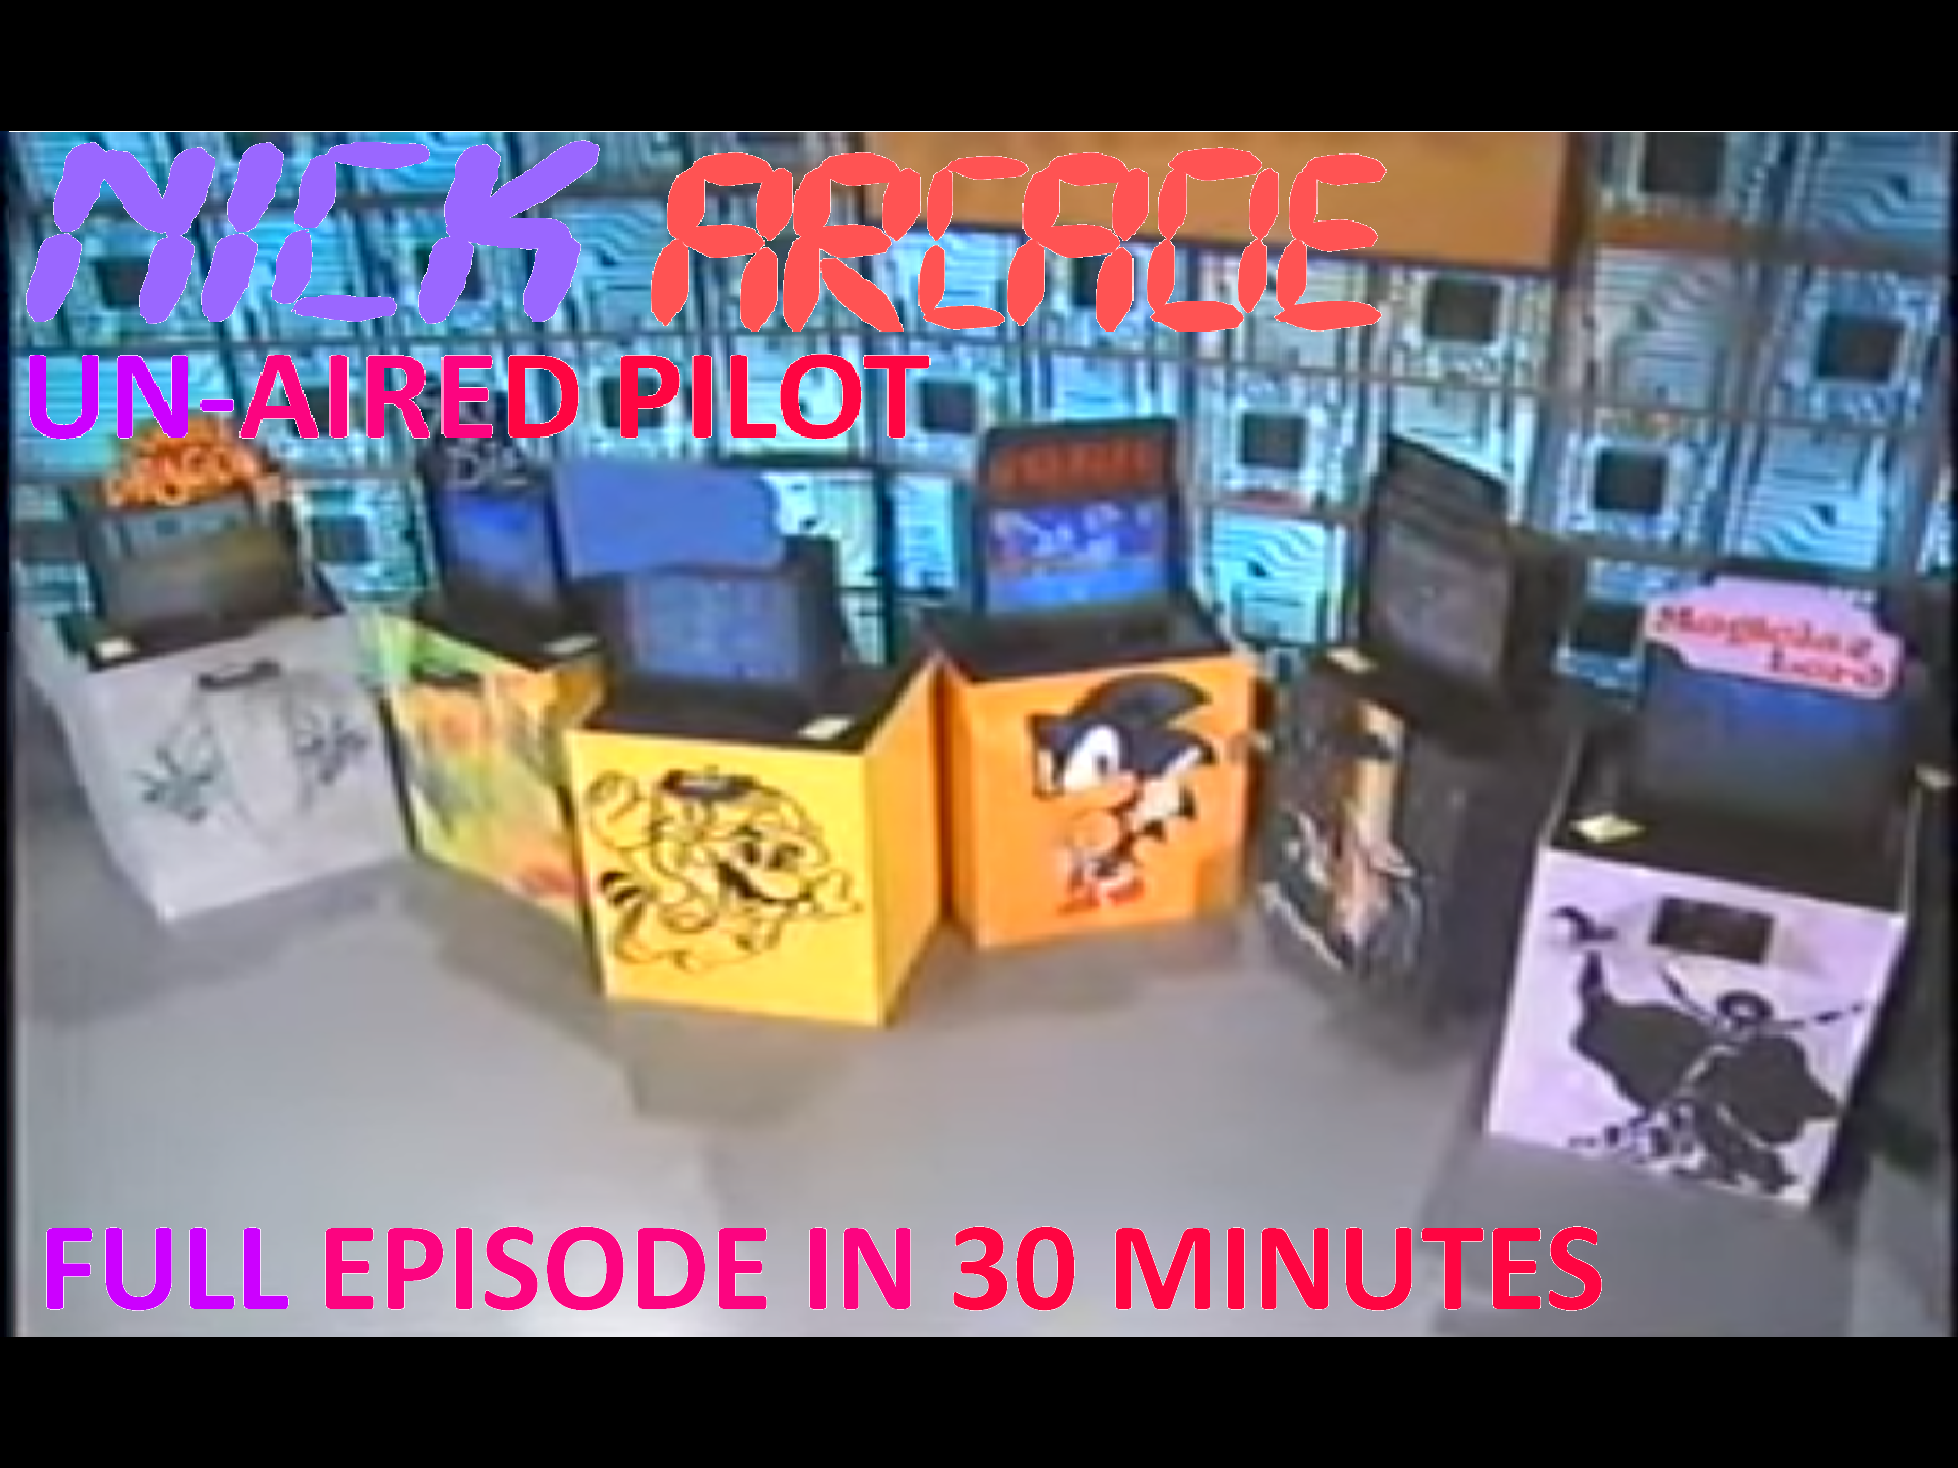 Nickelodeon Arcade (Un-aired Pilot, 1991) - Jody and Meadow vs. Buddy and Keith